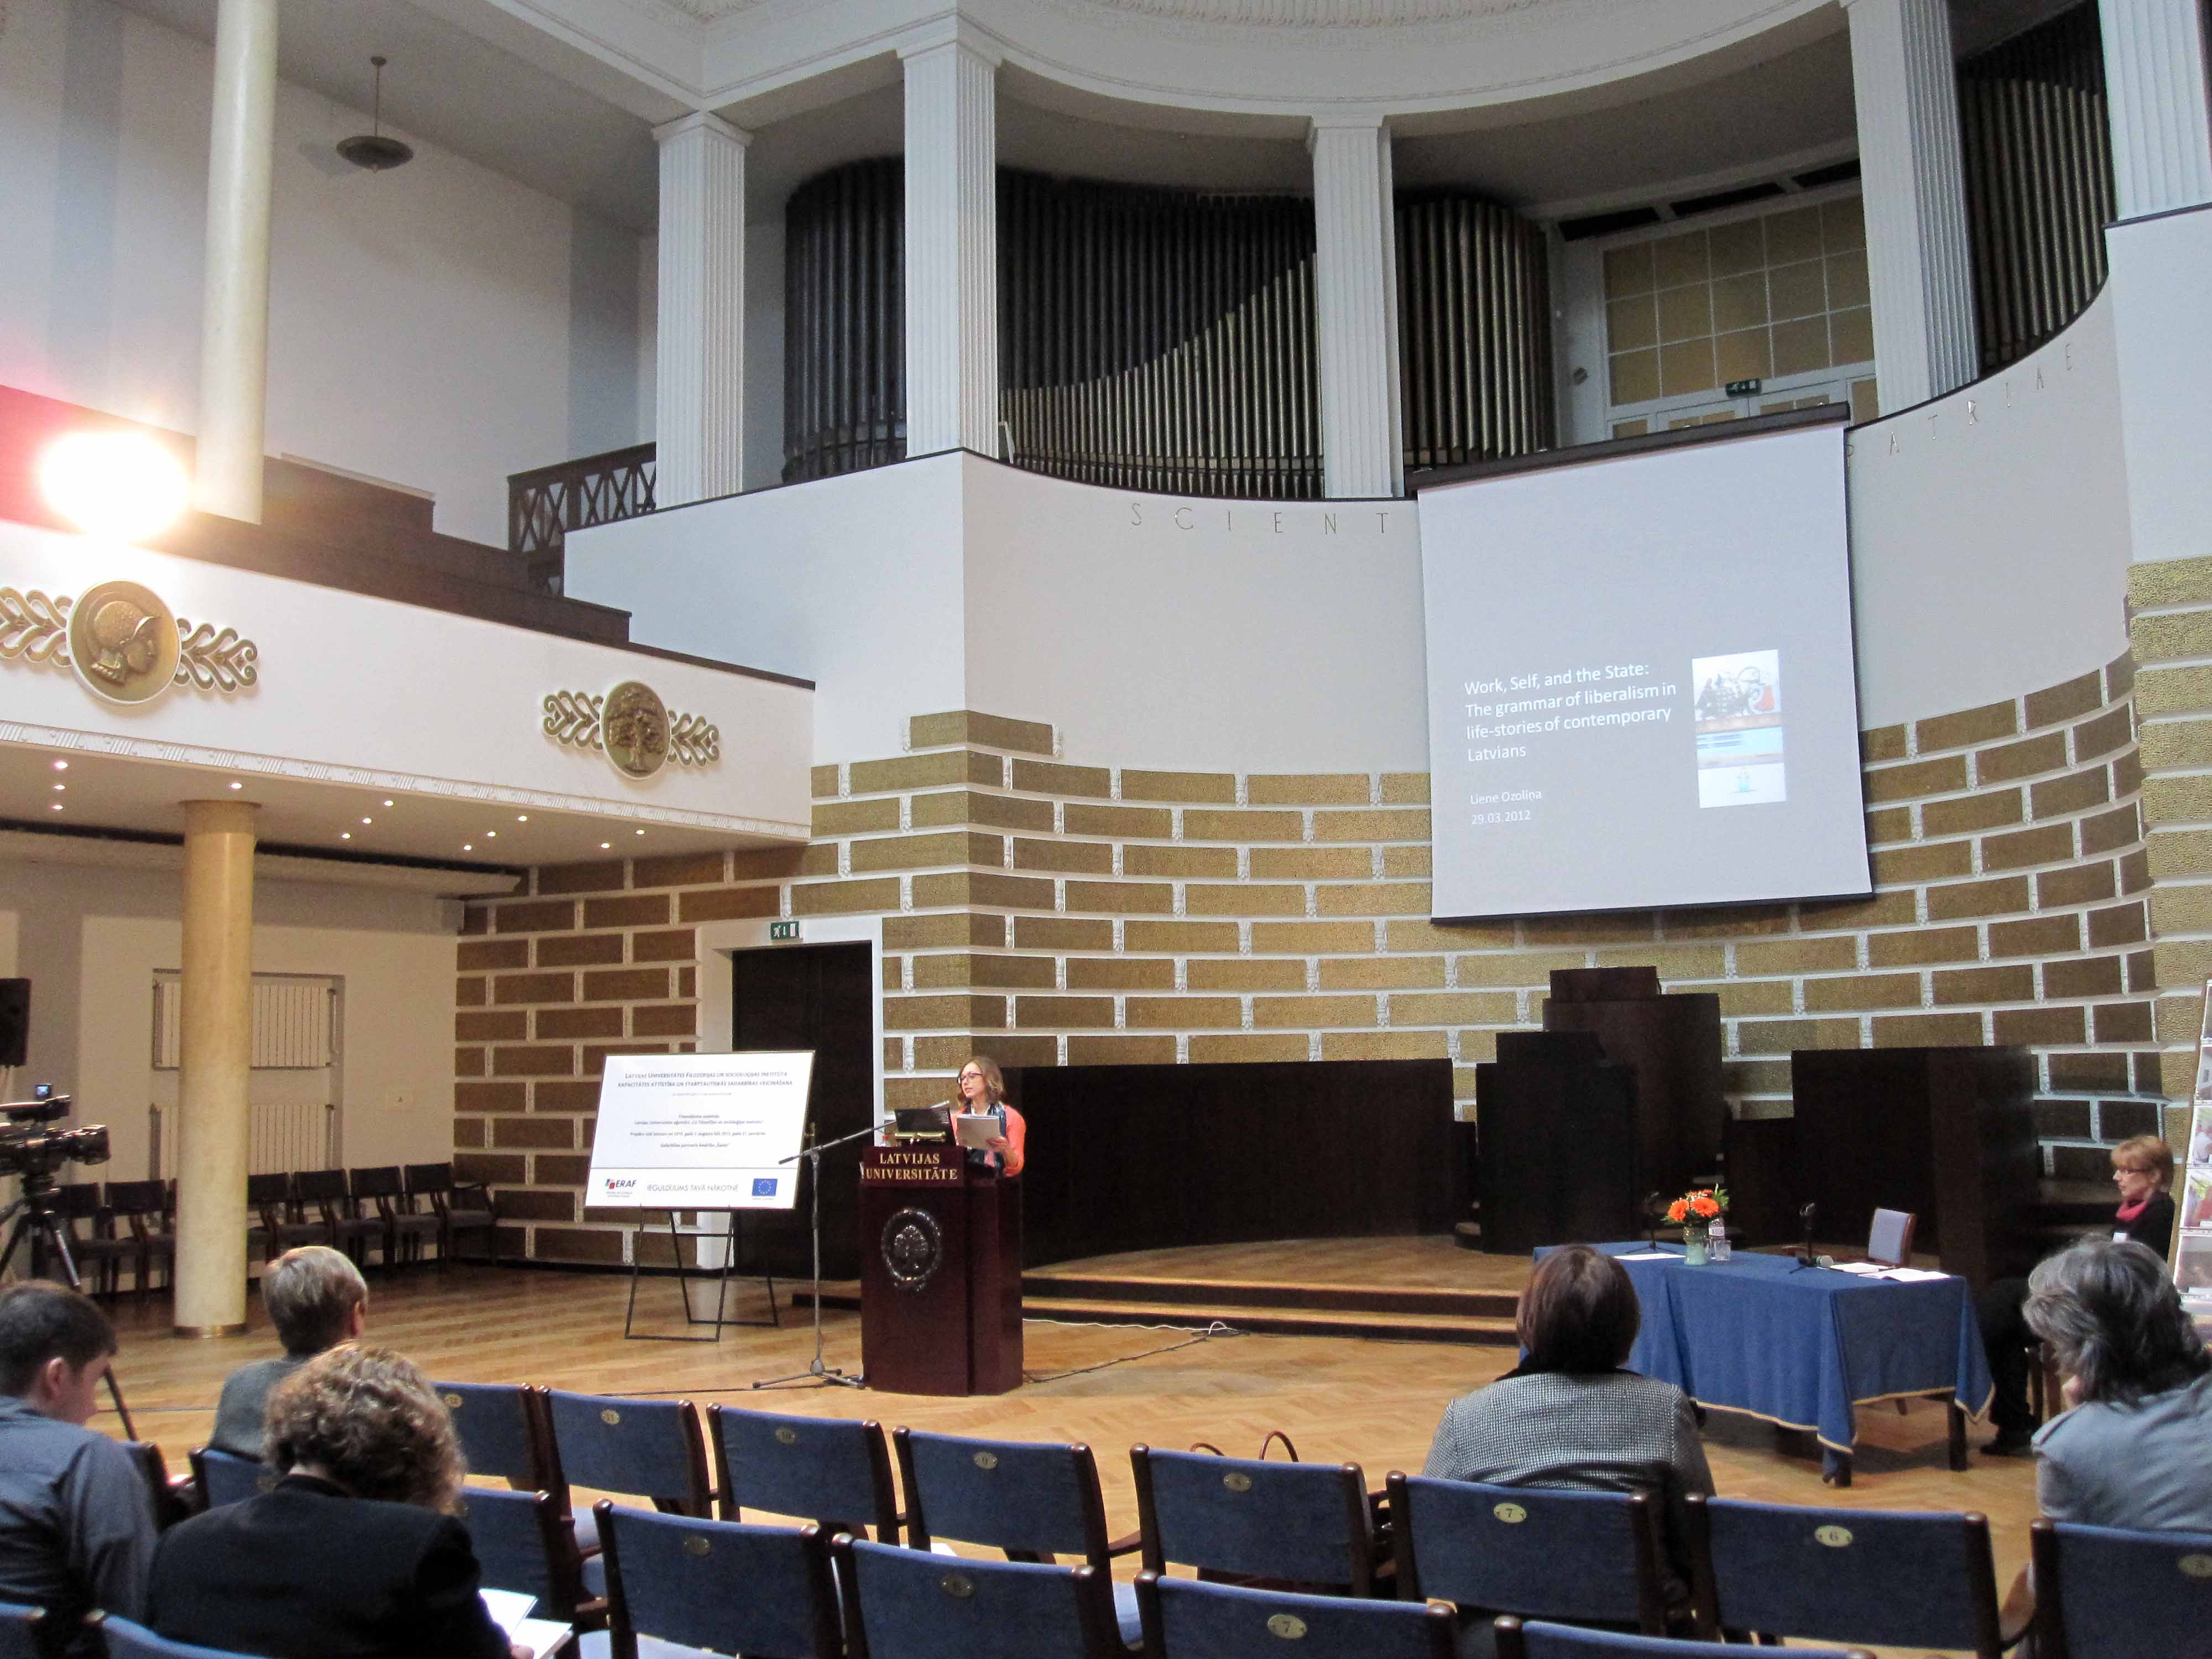 Keynot speeches in the Aula of the University